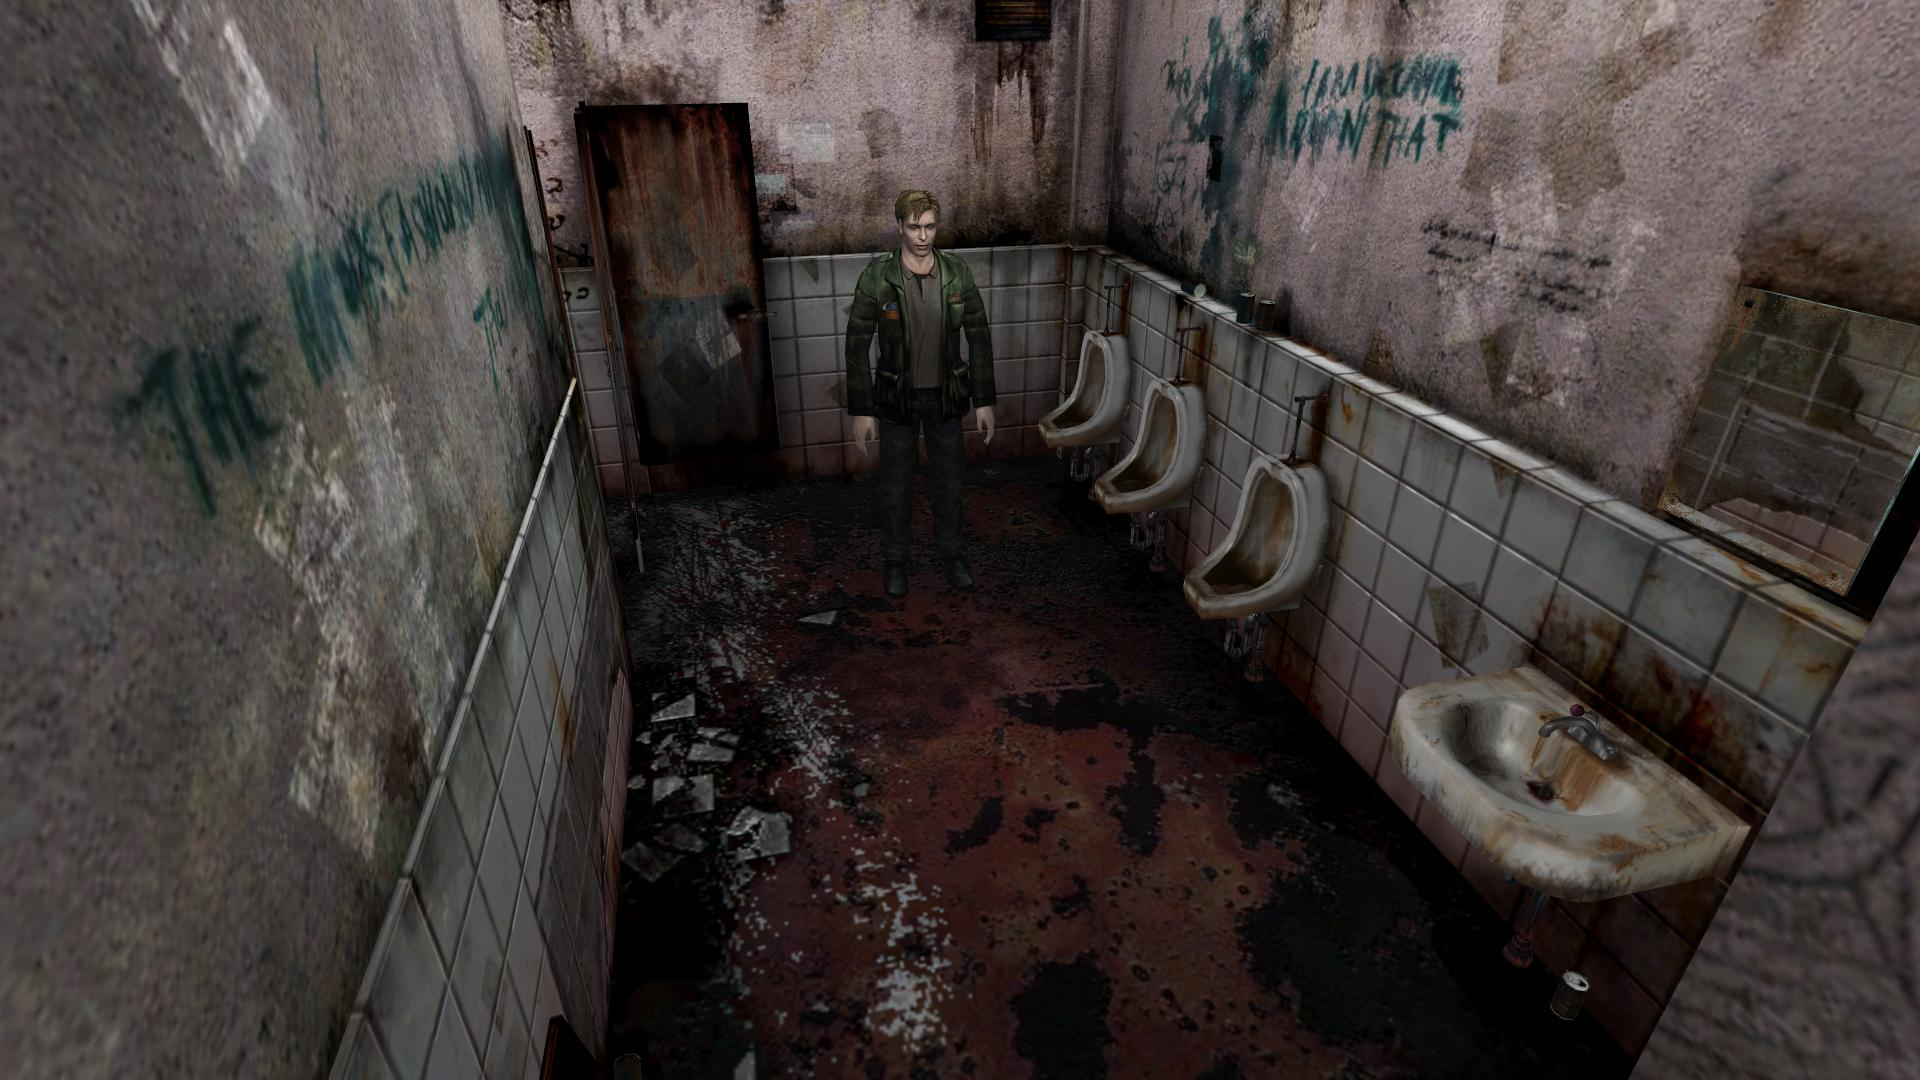 Turns Out Silent Hill 2 Had A Usable Mini Map This Whole Time